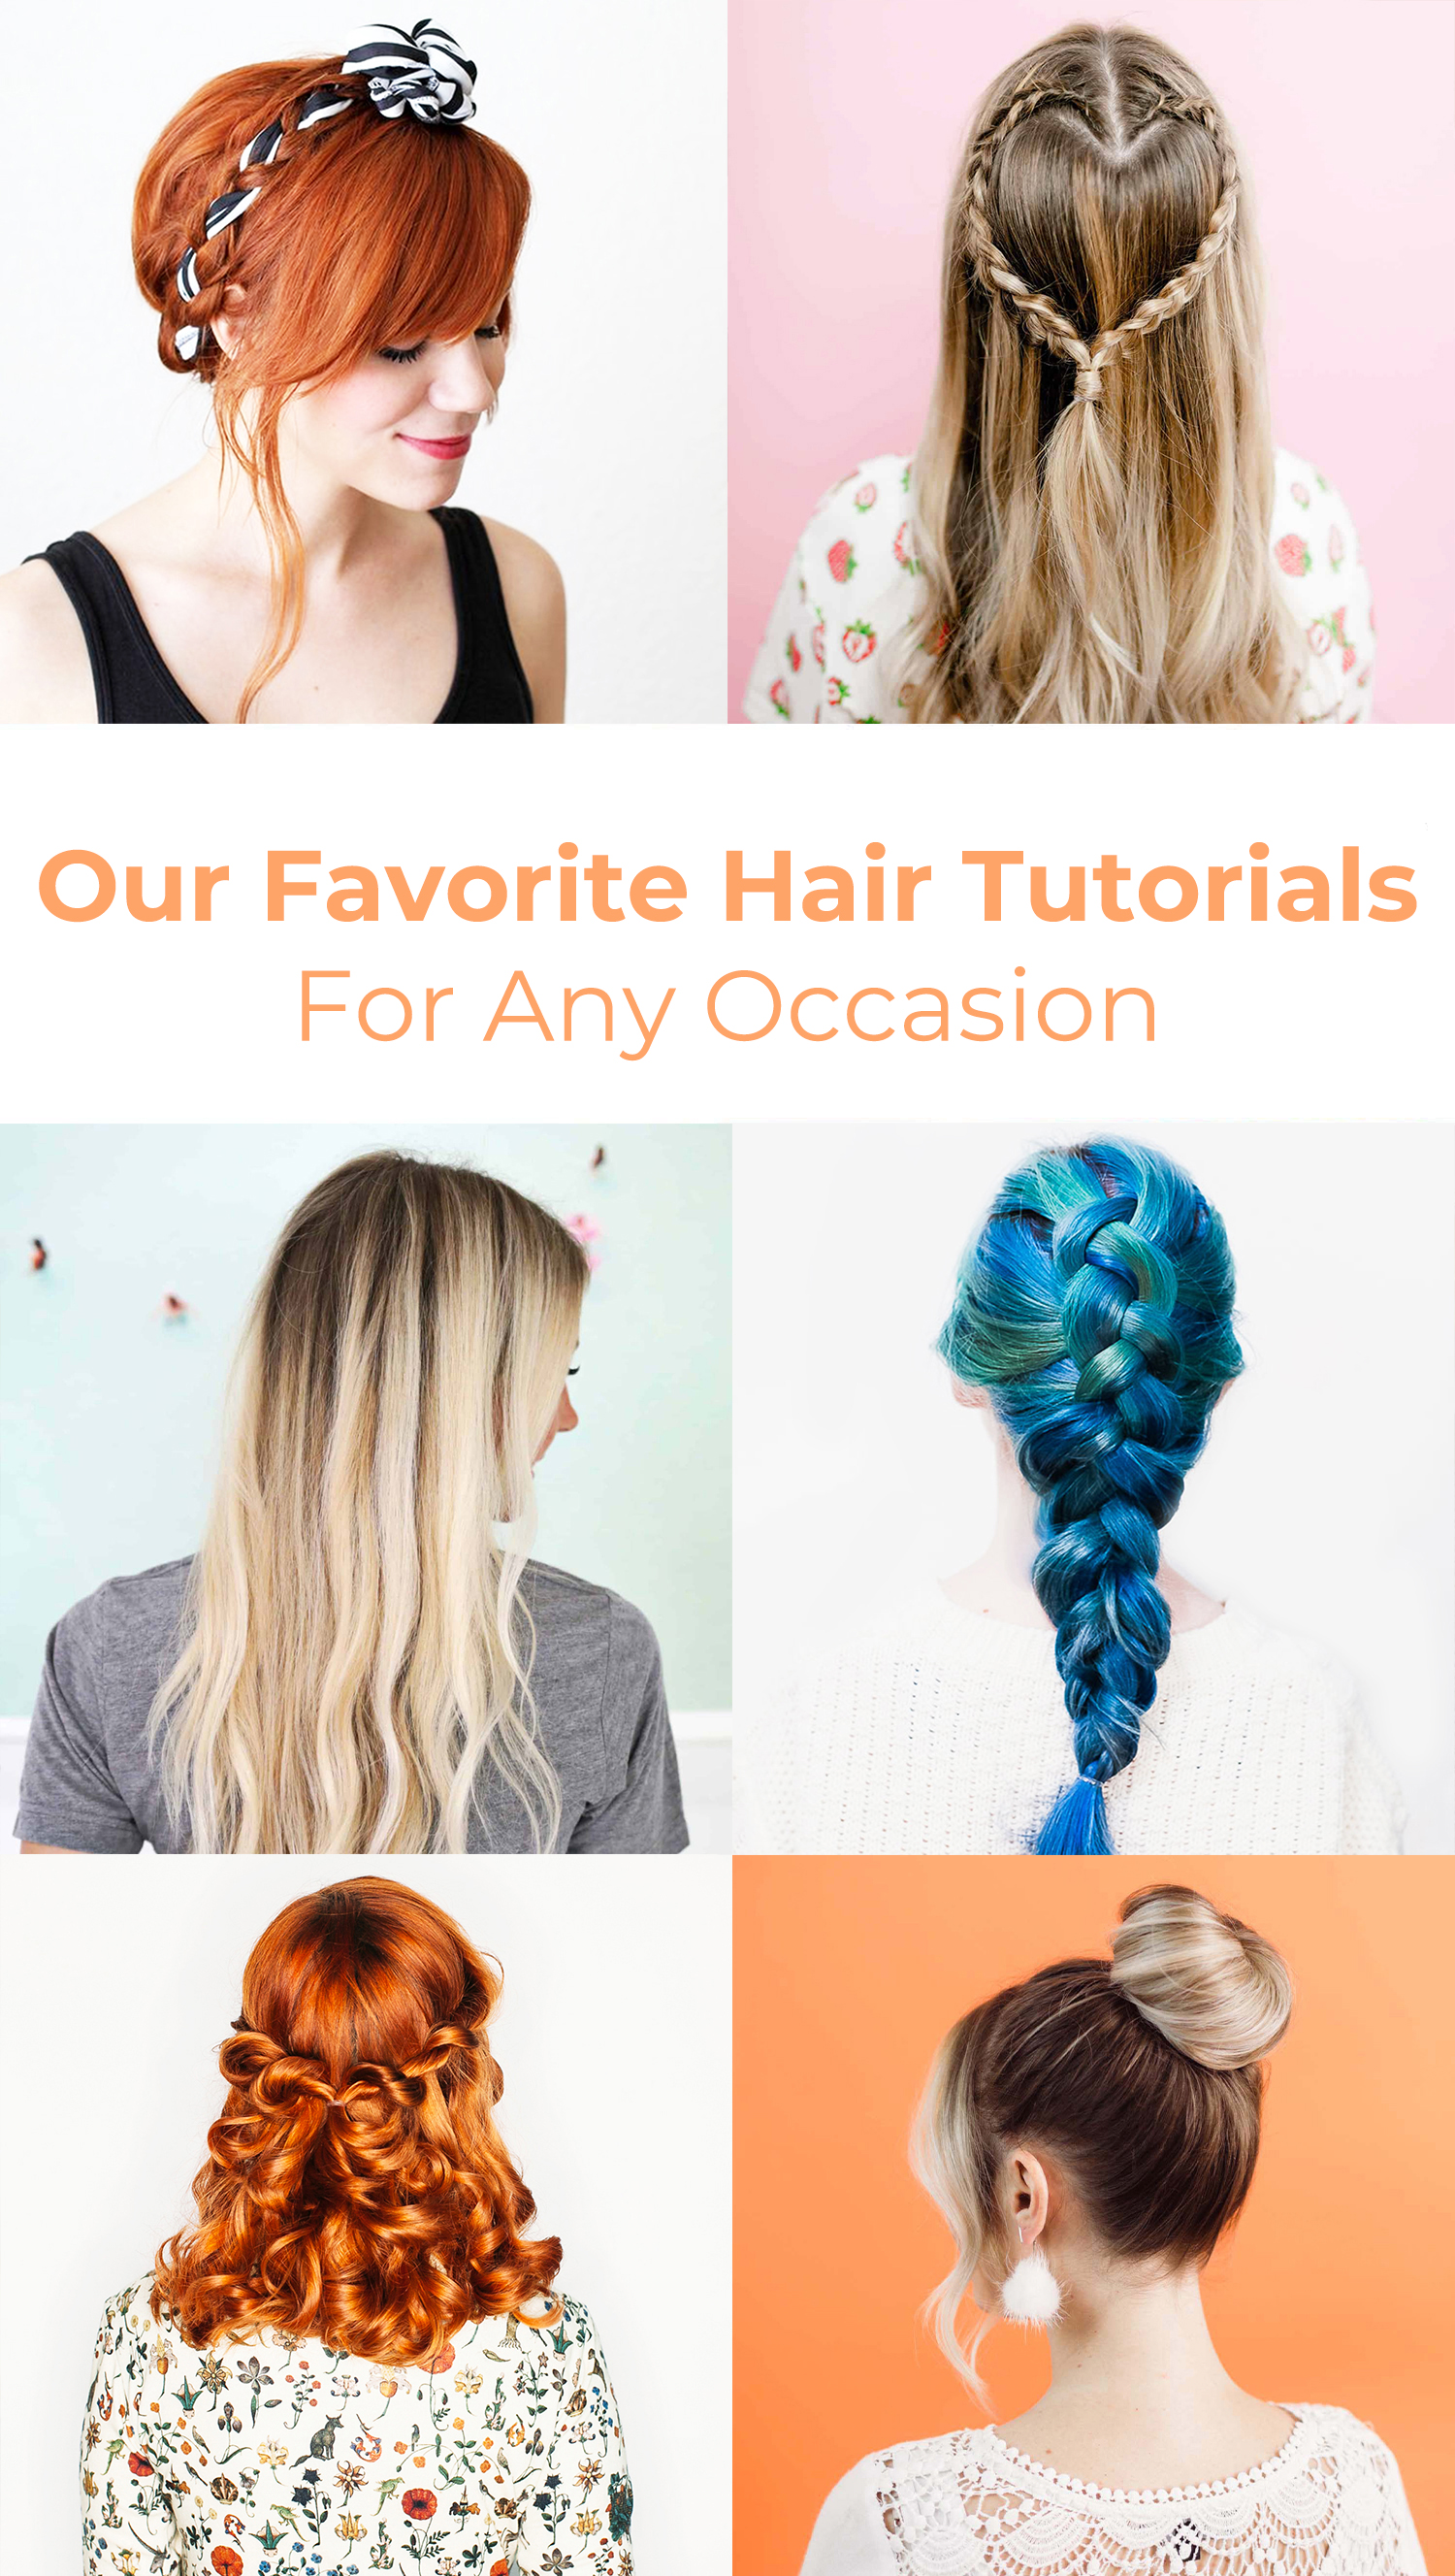 Our Favorite Hair Tutorials (For Any Occasion)